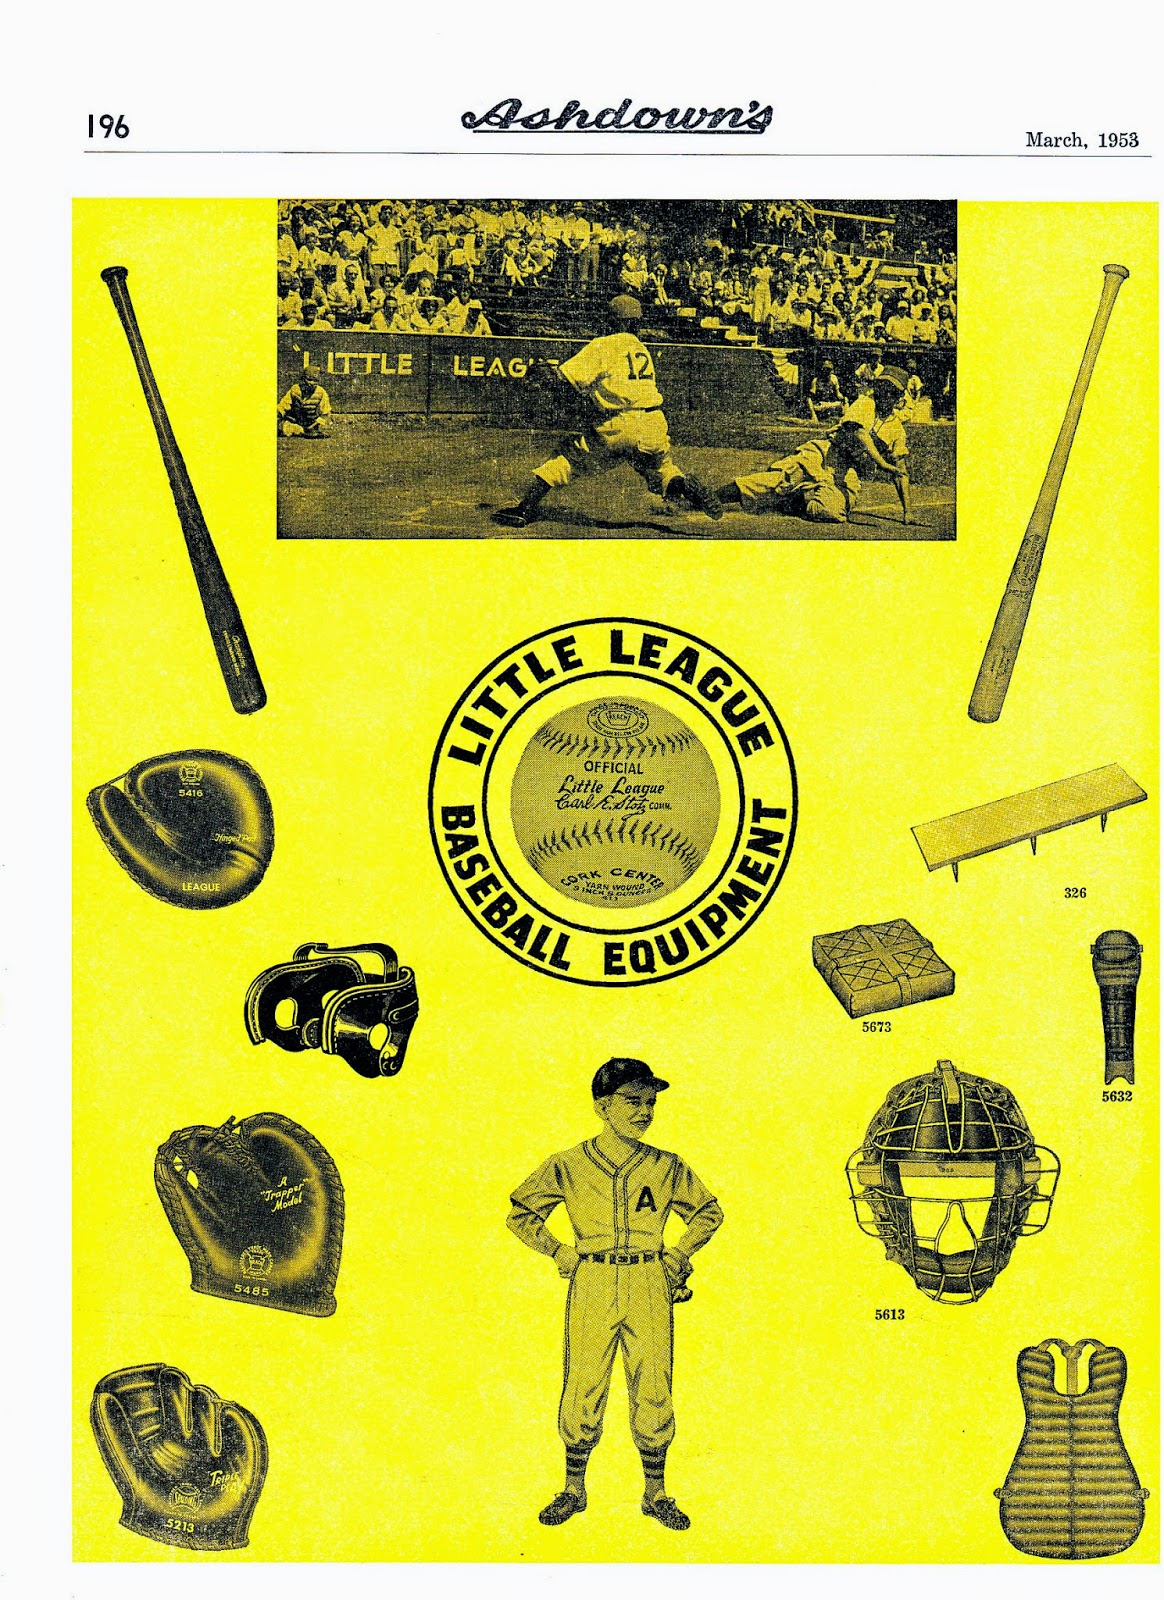 Progress Is Fine But Its Gone On For Too Long November 2014 Scrap Printed Circuit Board Recycling Equipmentjpg Carl Stotz And Little League Baseball